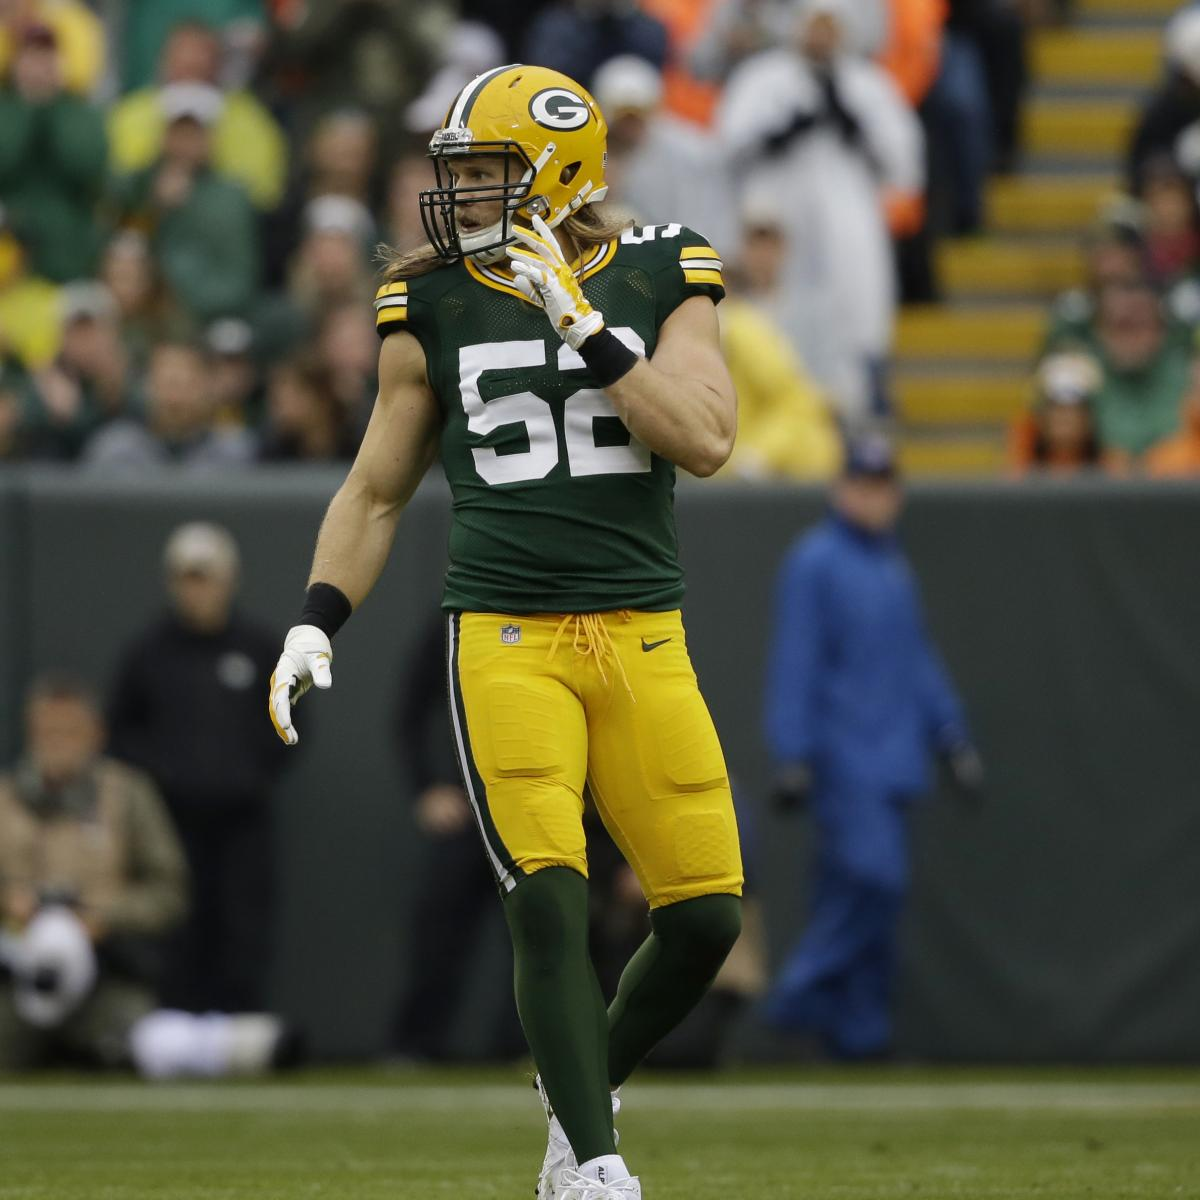 Clay Matthews Reportedly Underwent Surgery for Knee Injury 'Cleanup'